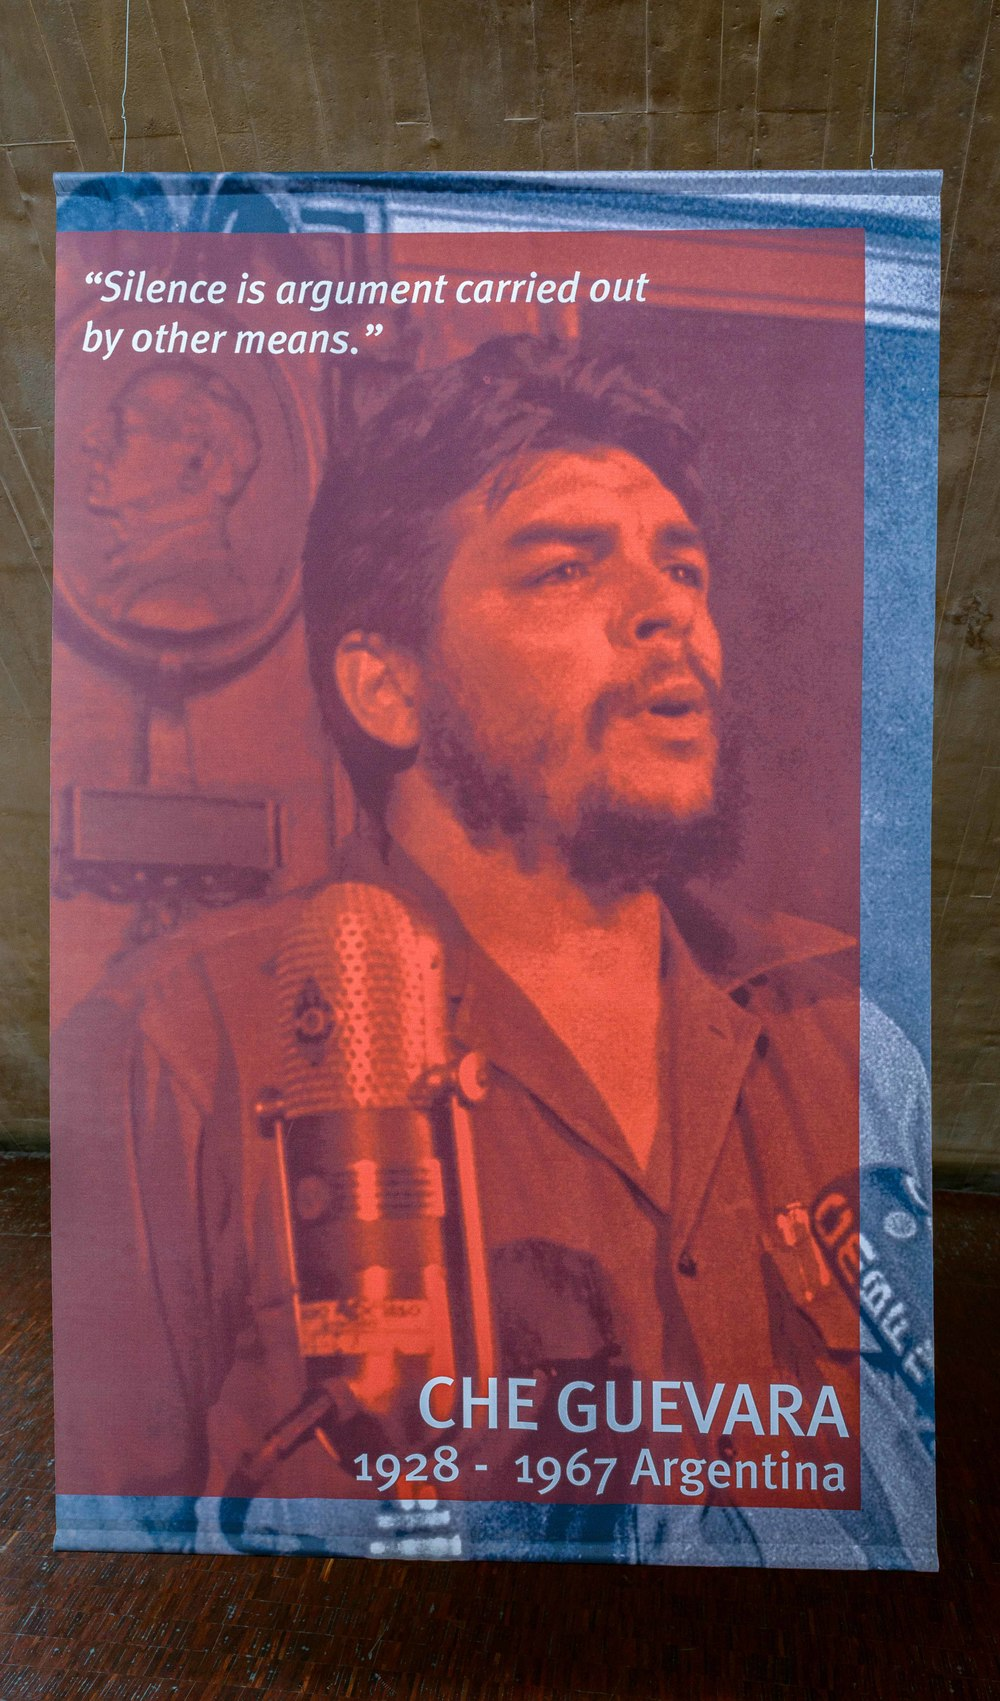 Che Guevara, in the Gallery of Leaders.